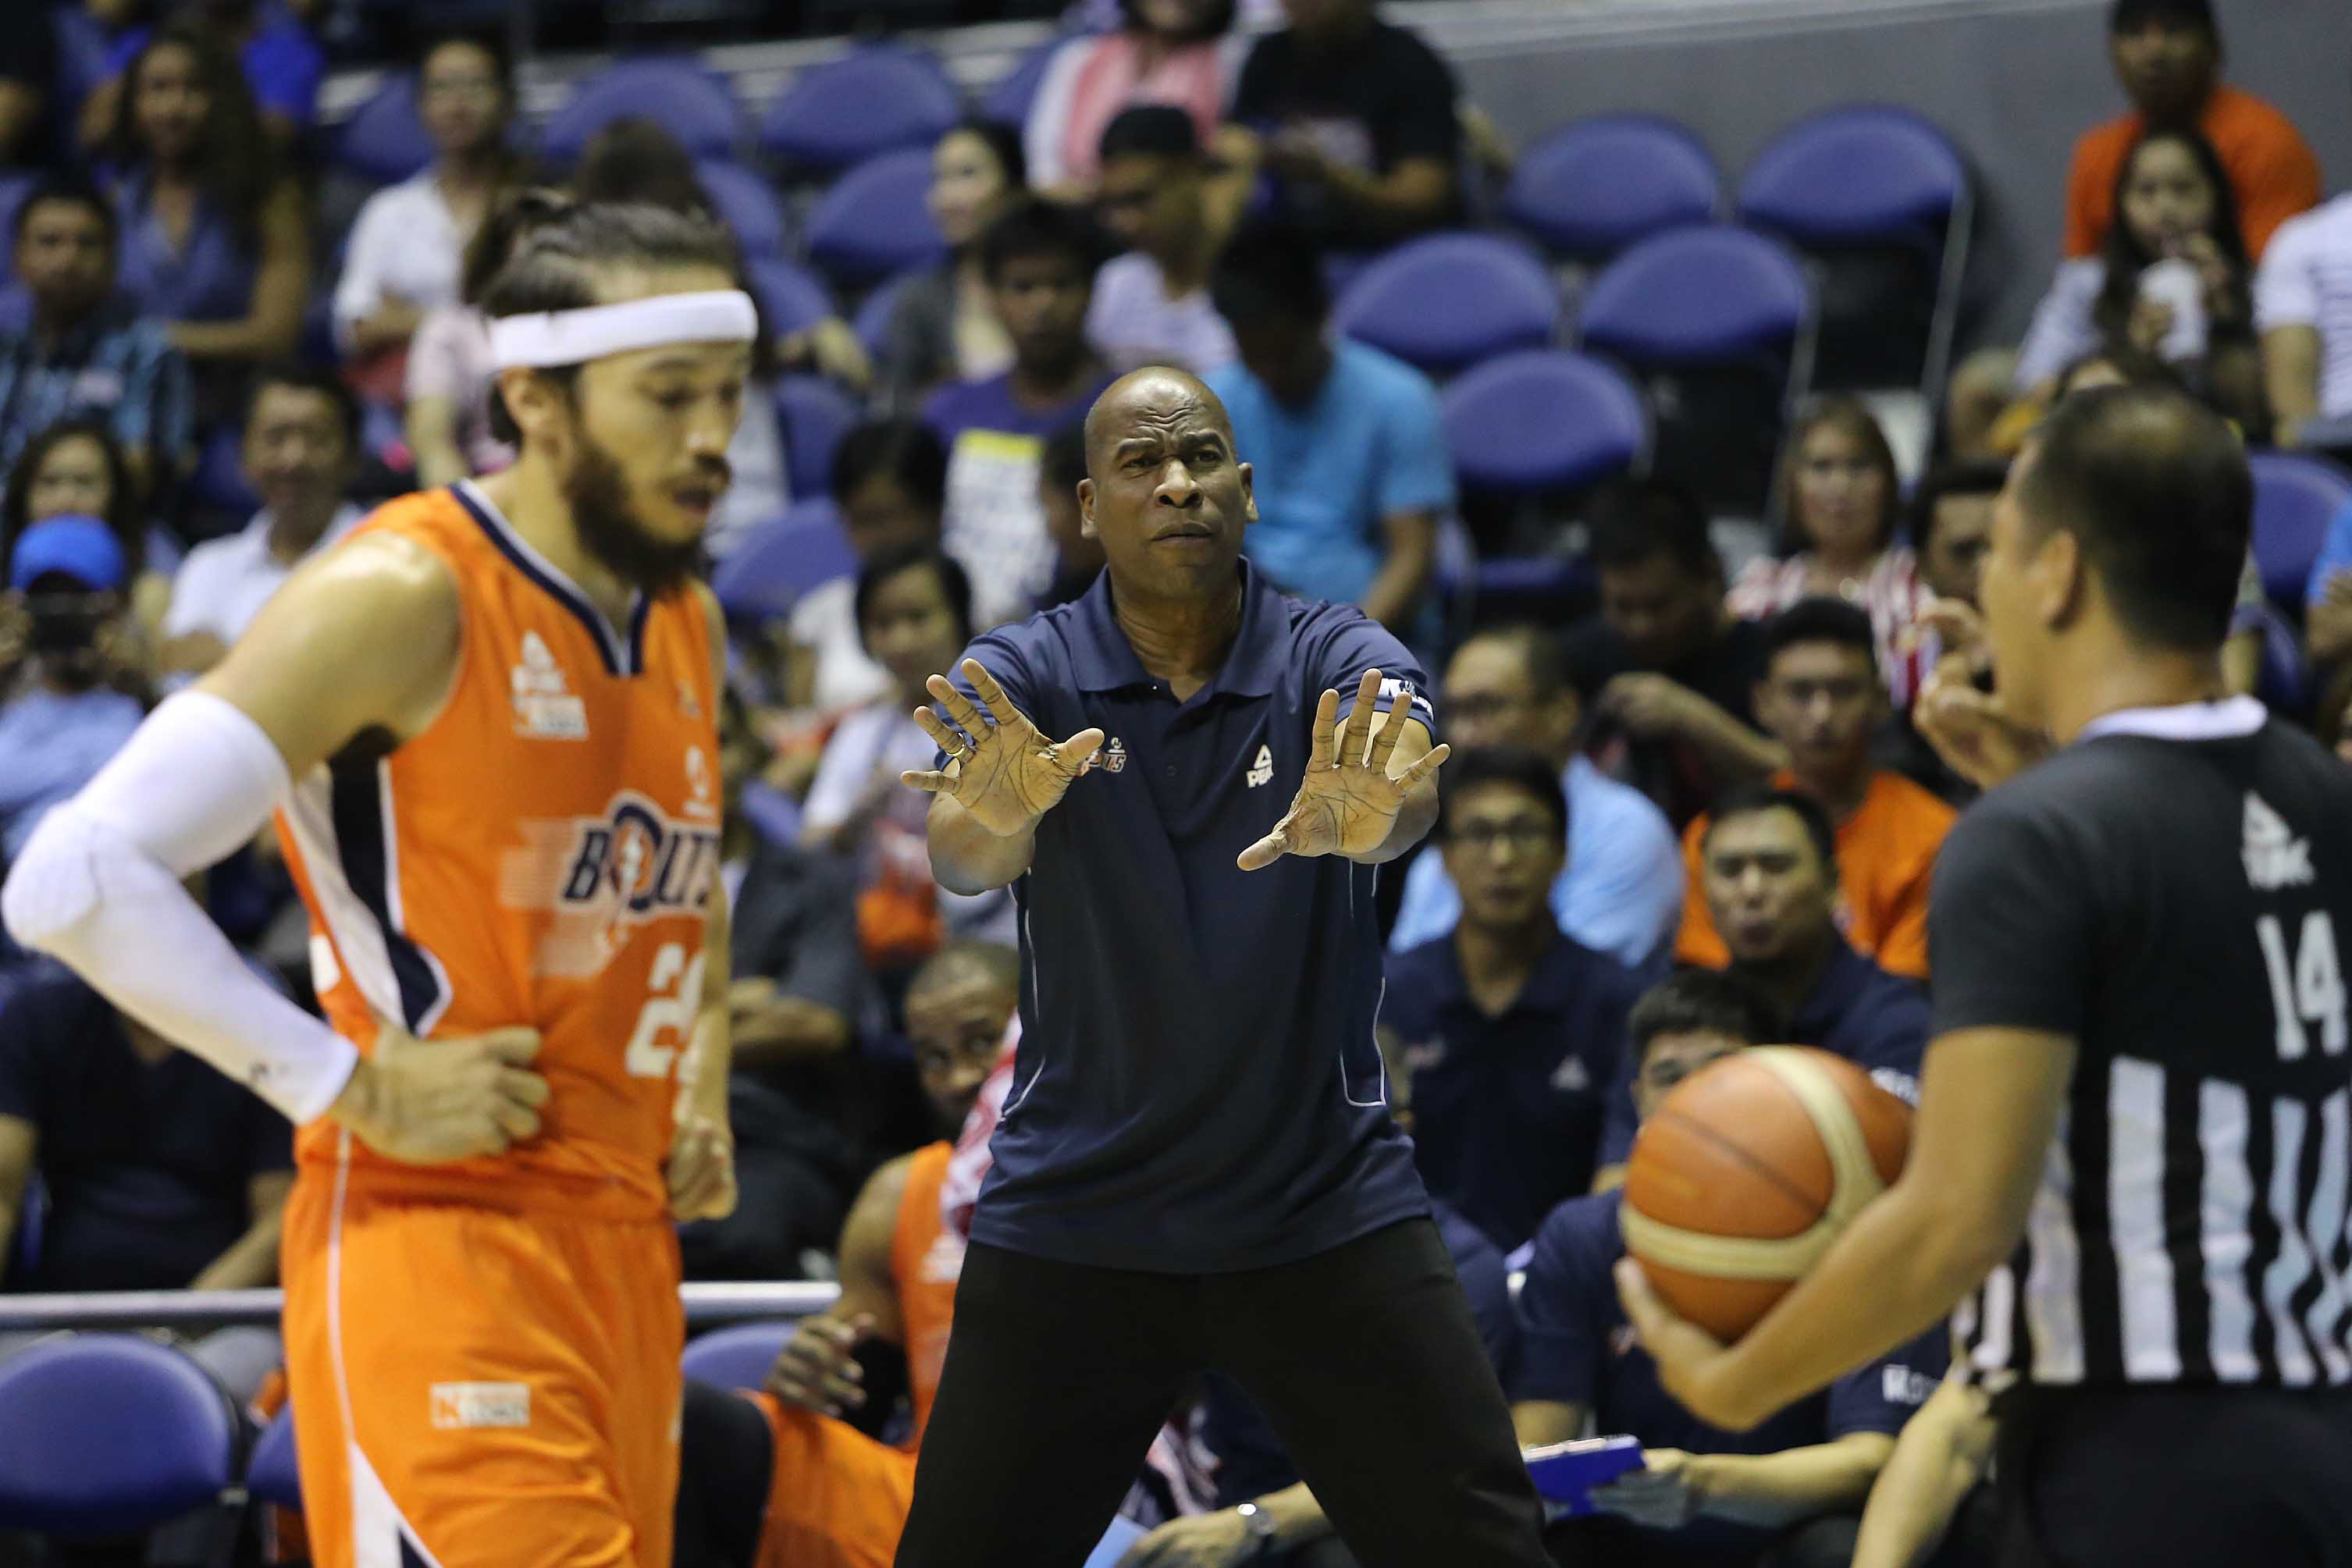 Meralco expects rough outing against full-strength Mahindra side in playoff